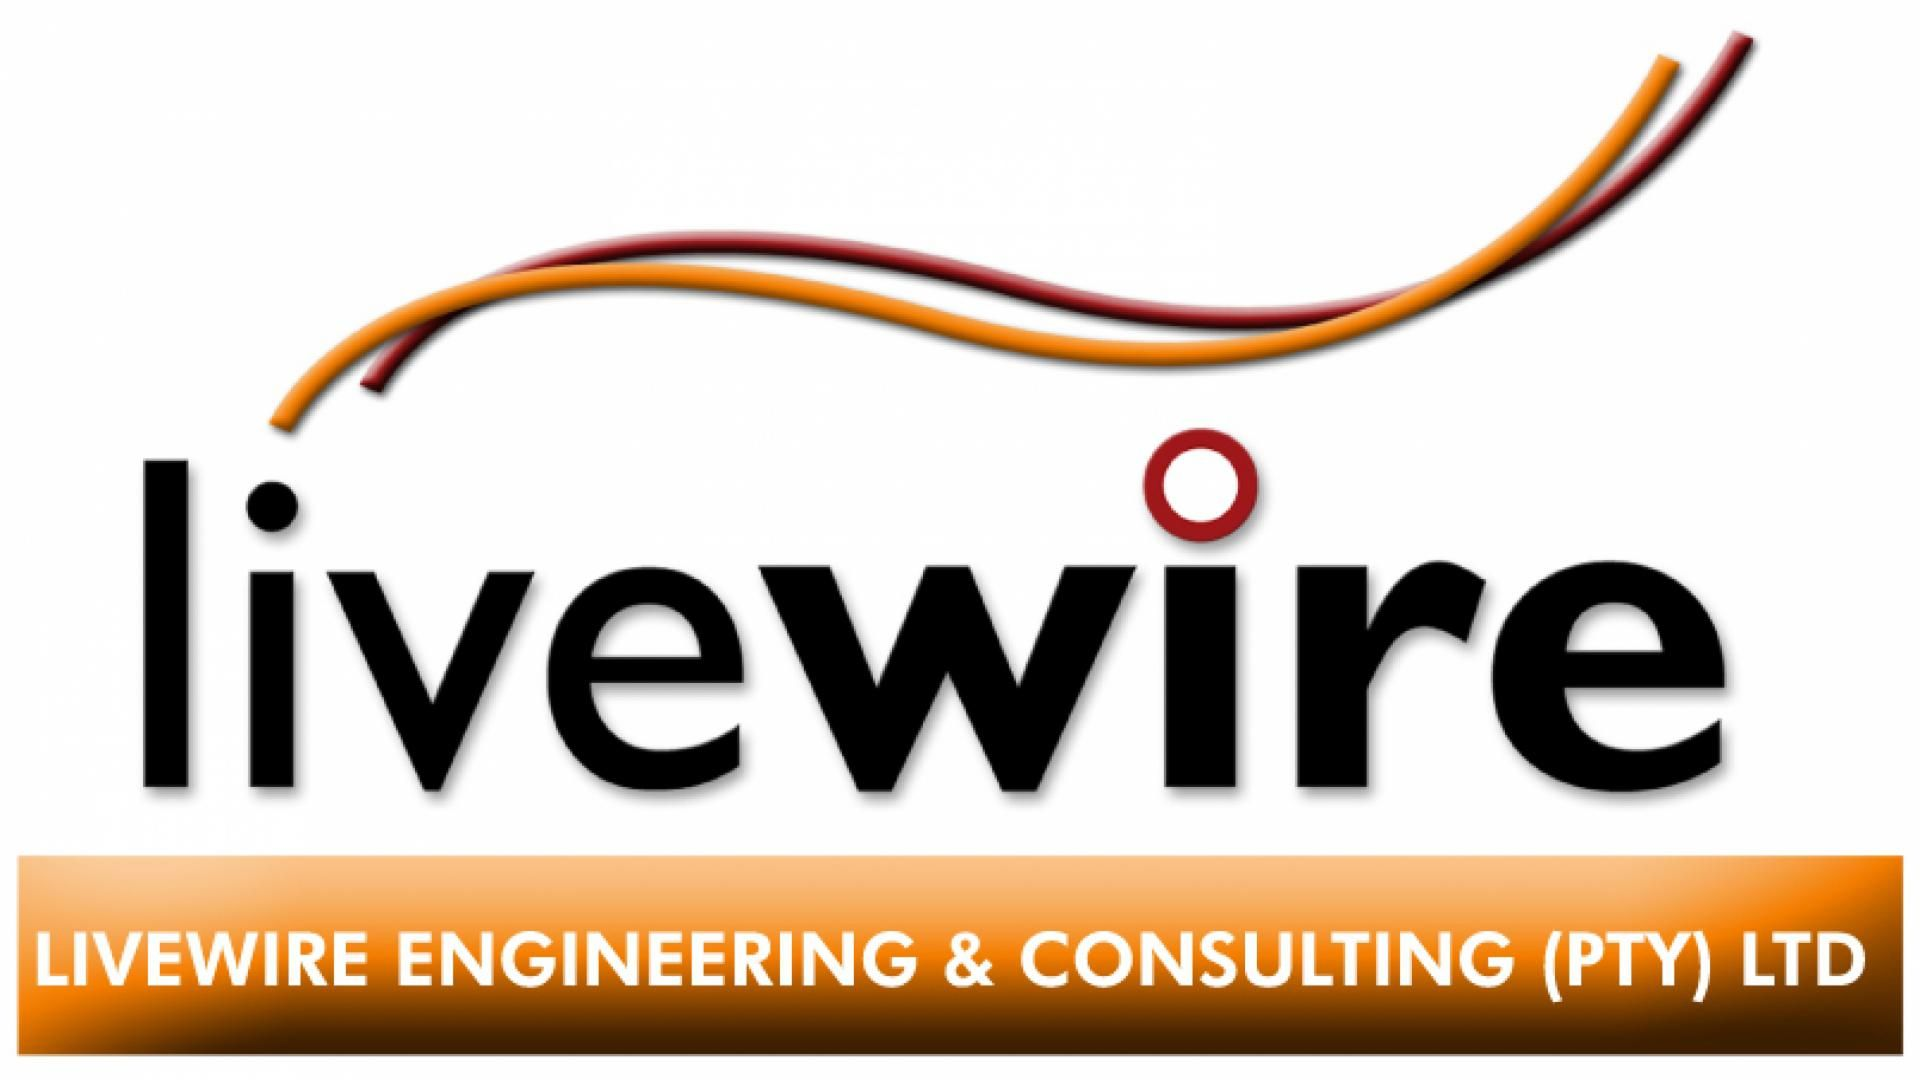 Livewire Engineering & Consulting